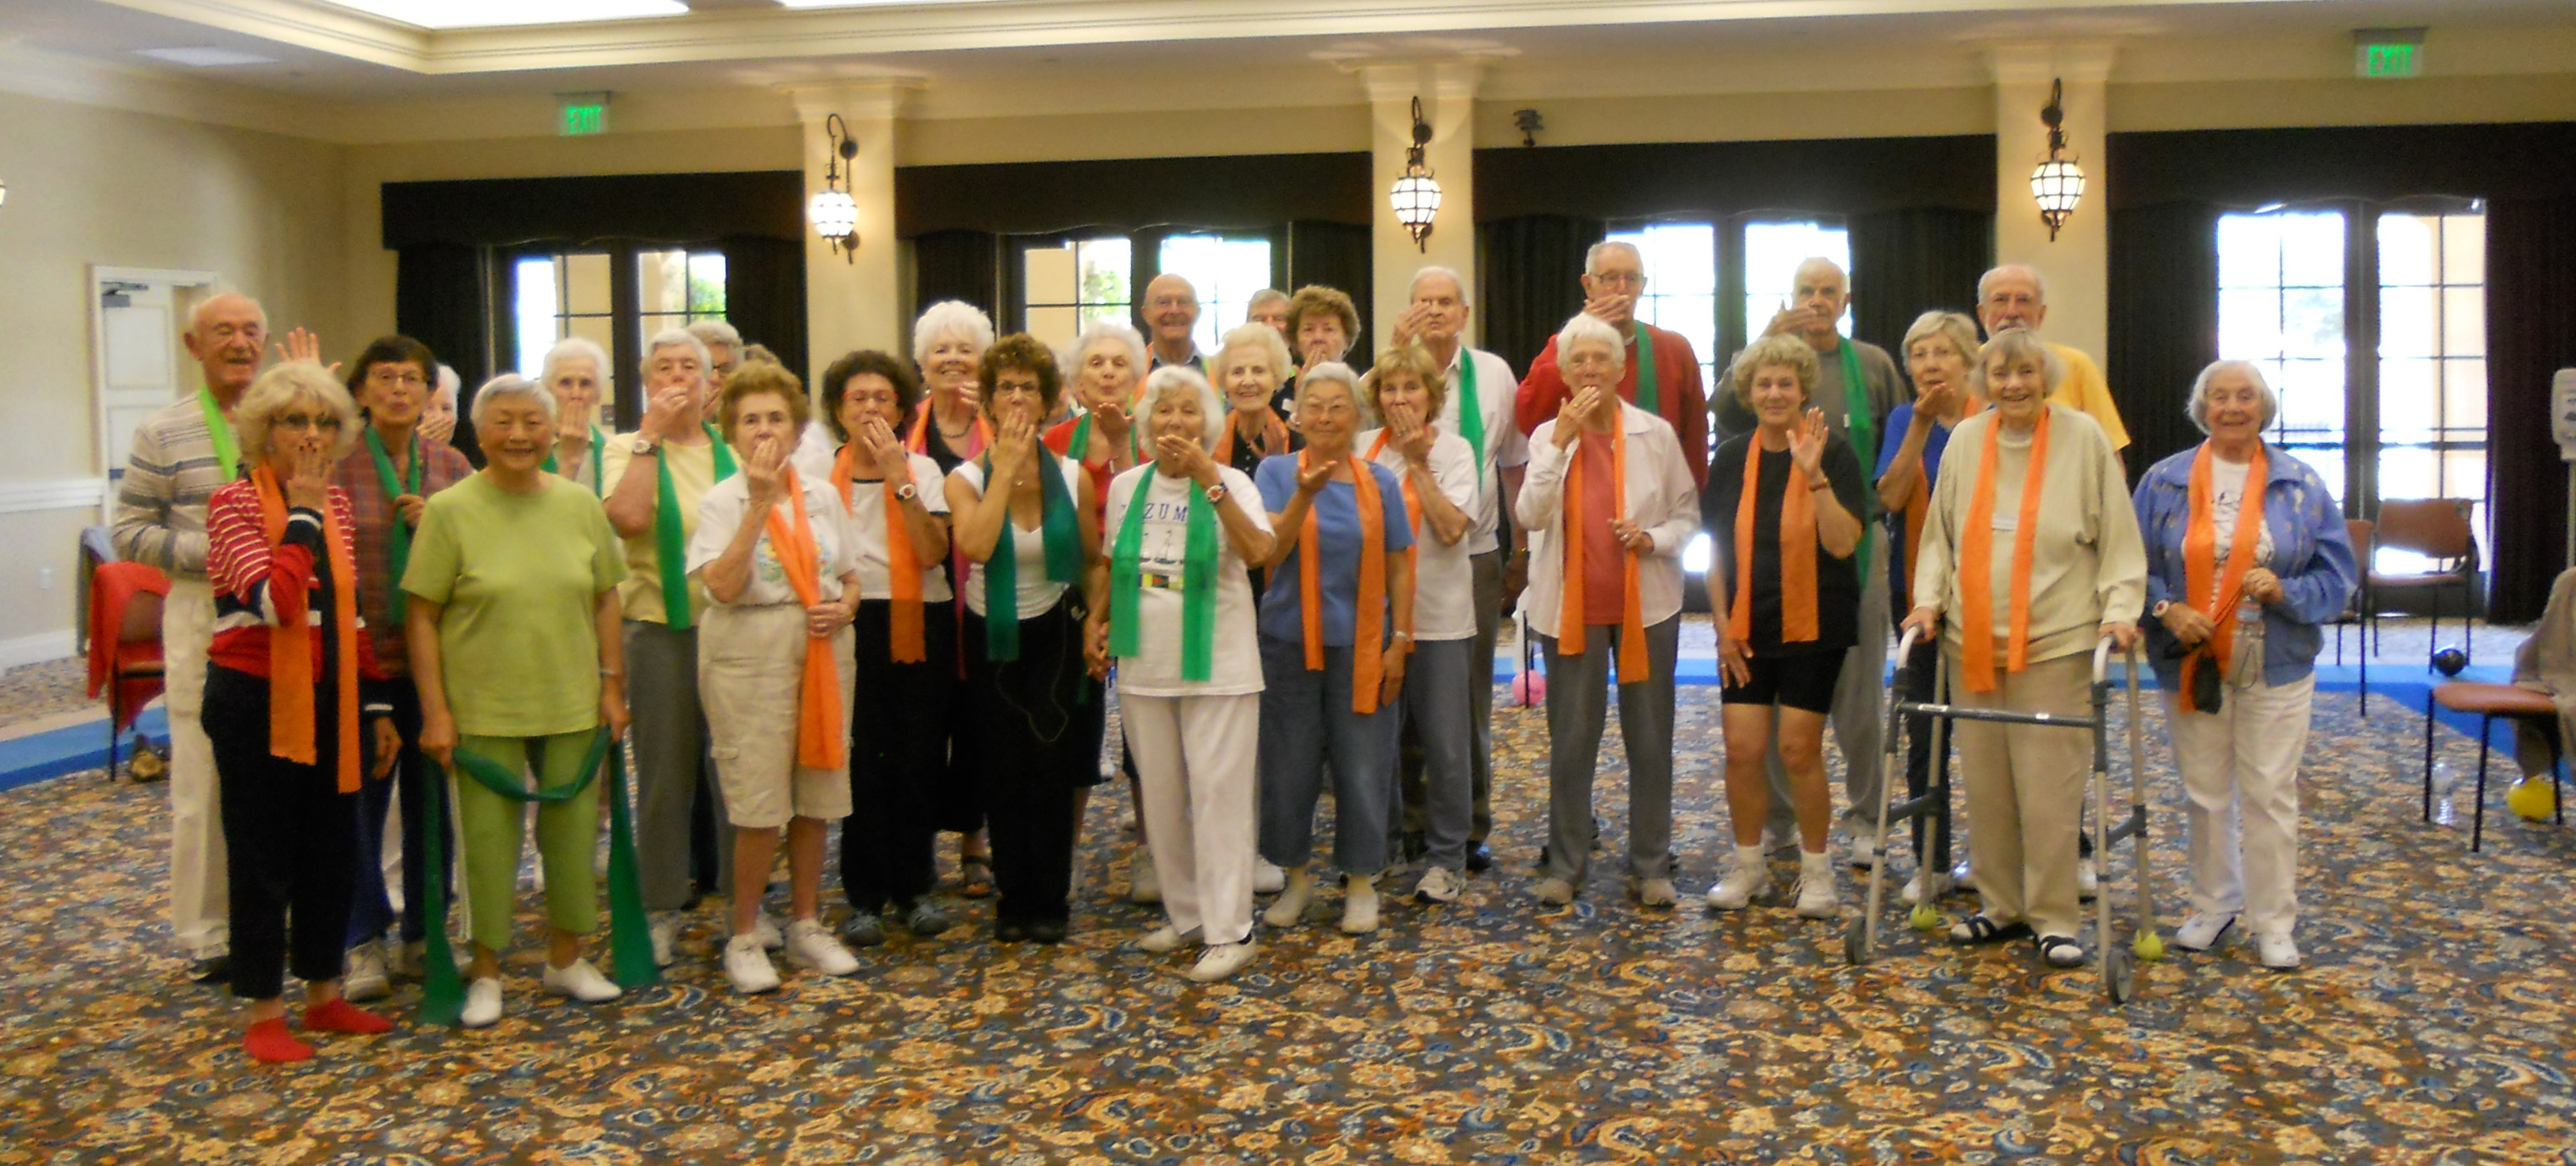 Exercise class in assisted living